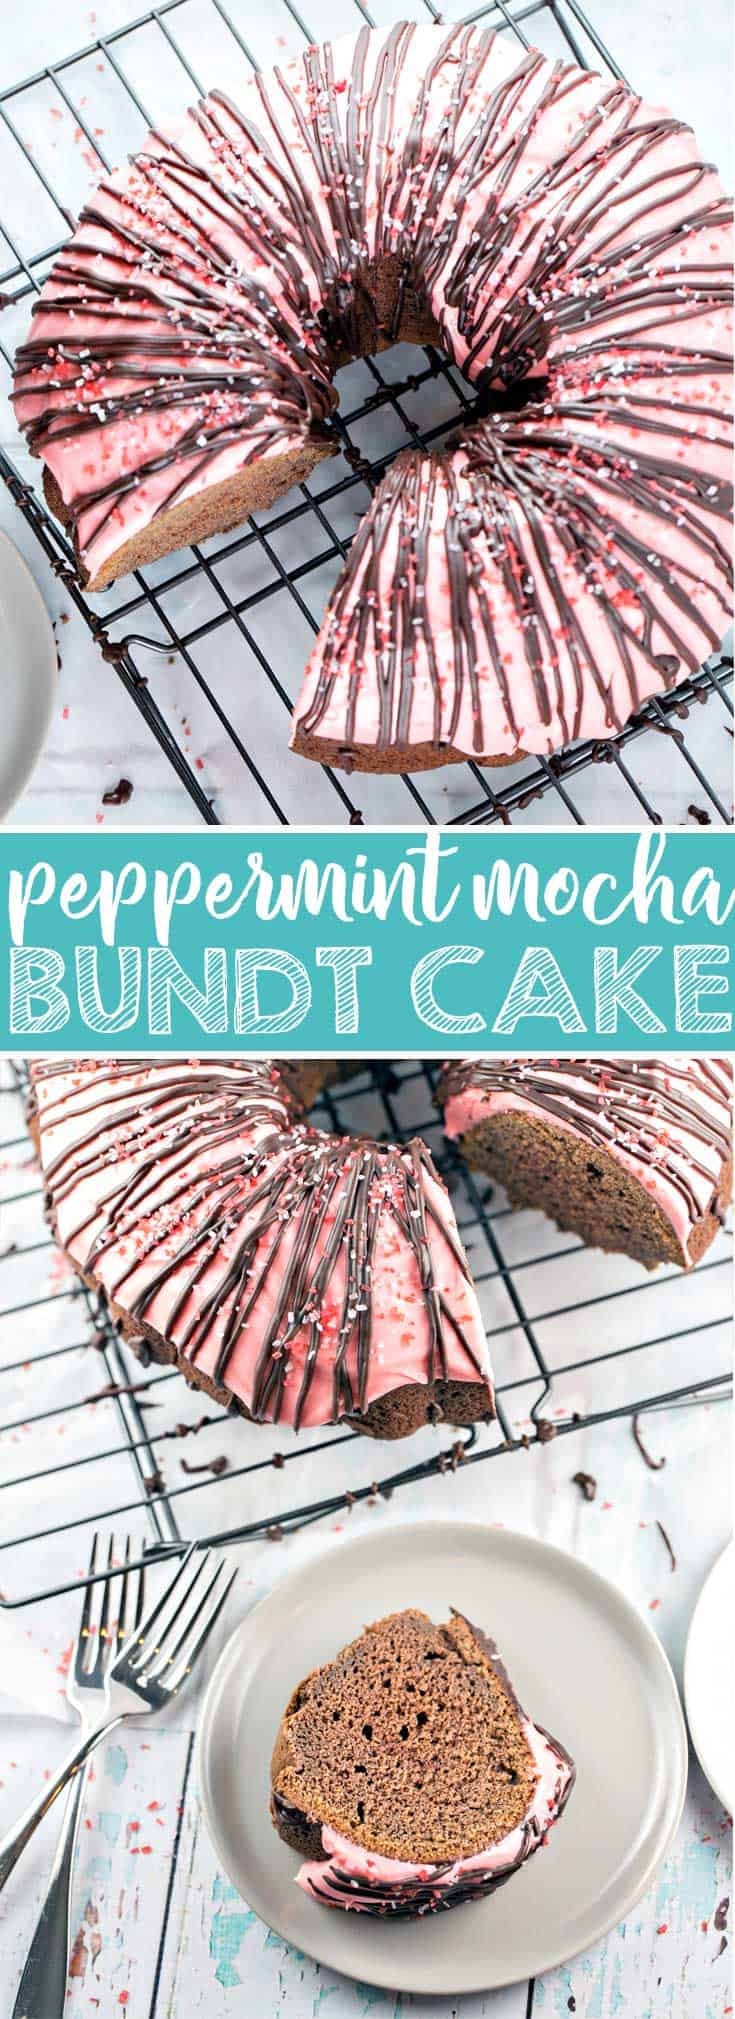 Peppermint Mocha Bundt Cake Recipe